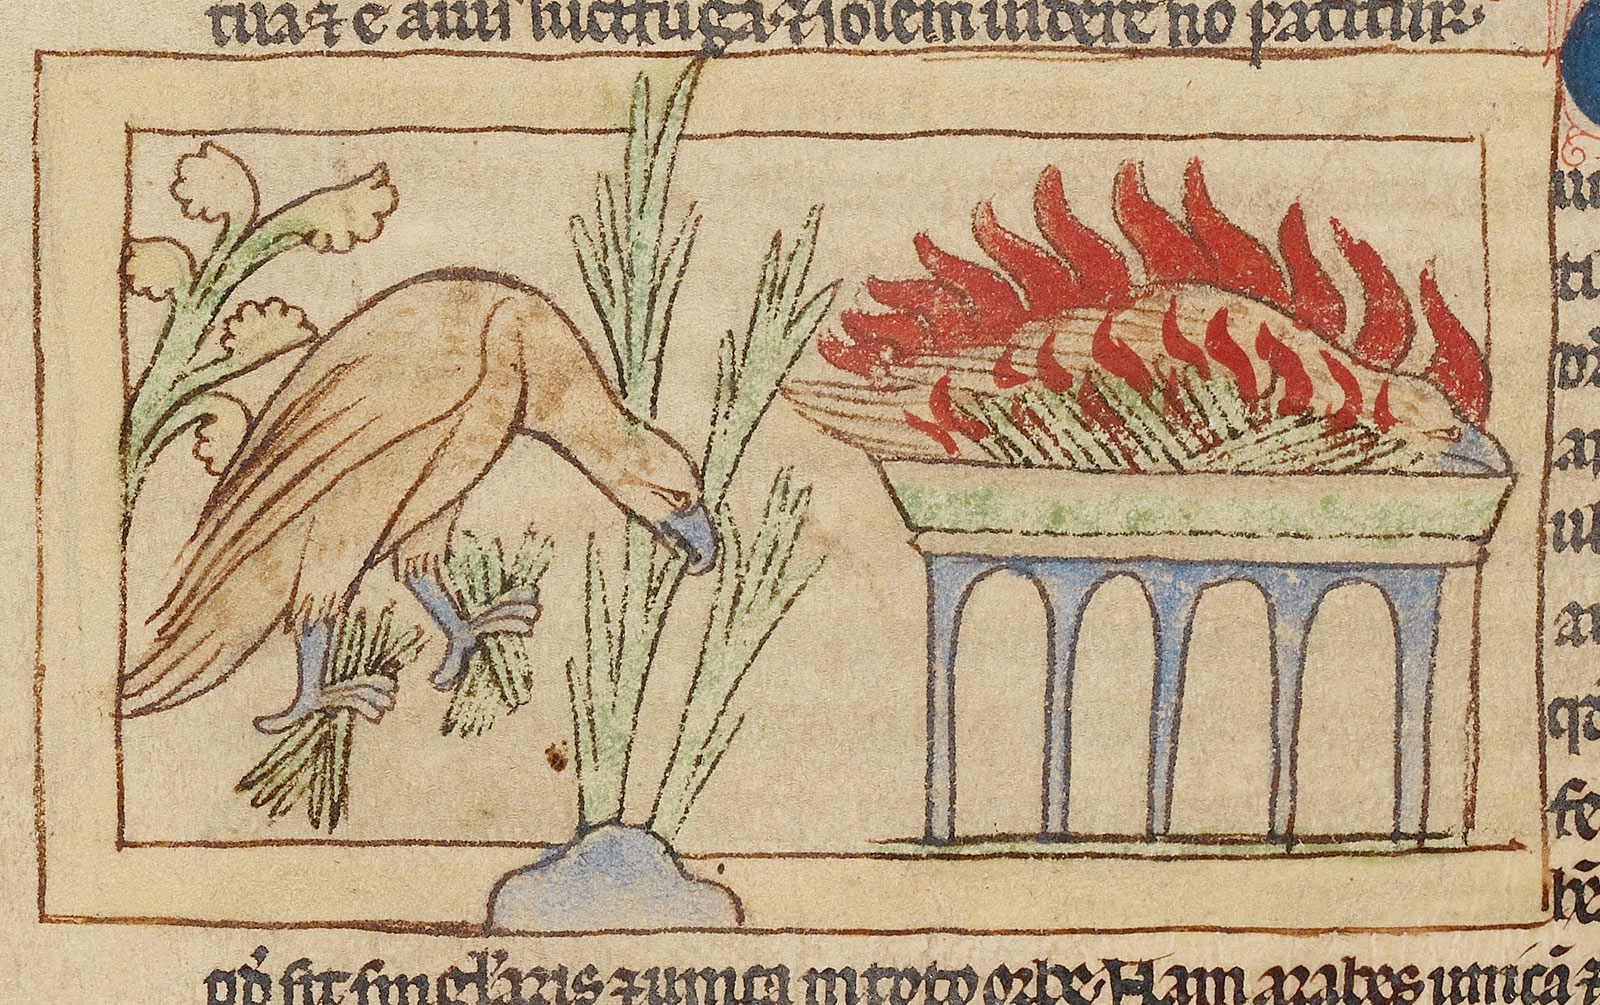 At left, a phoenix bird gathers sweet-smelling plants for its altar. At right, a phoenix burns with a peaceful expression on its face.